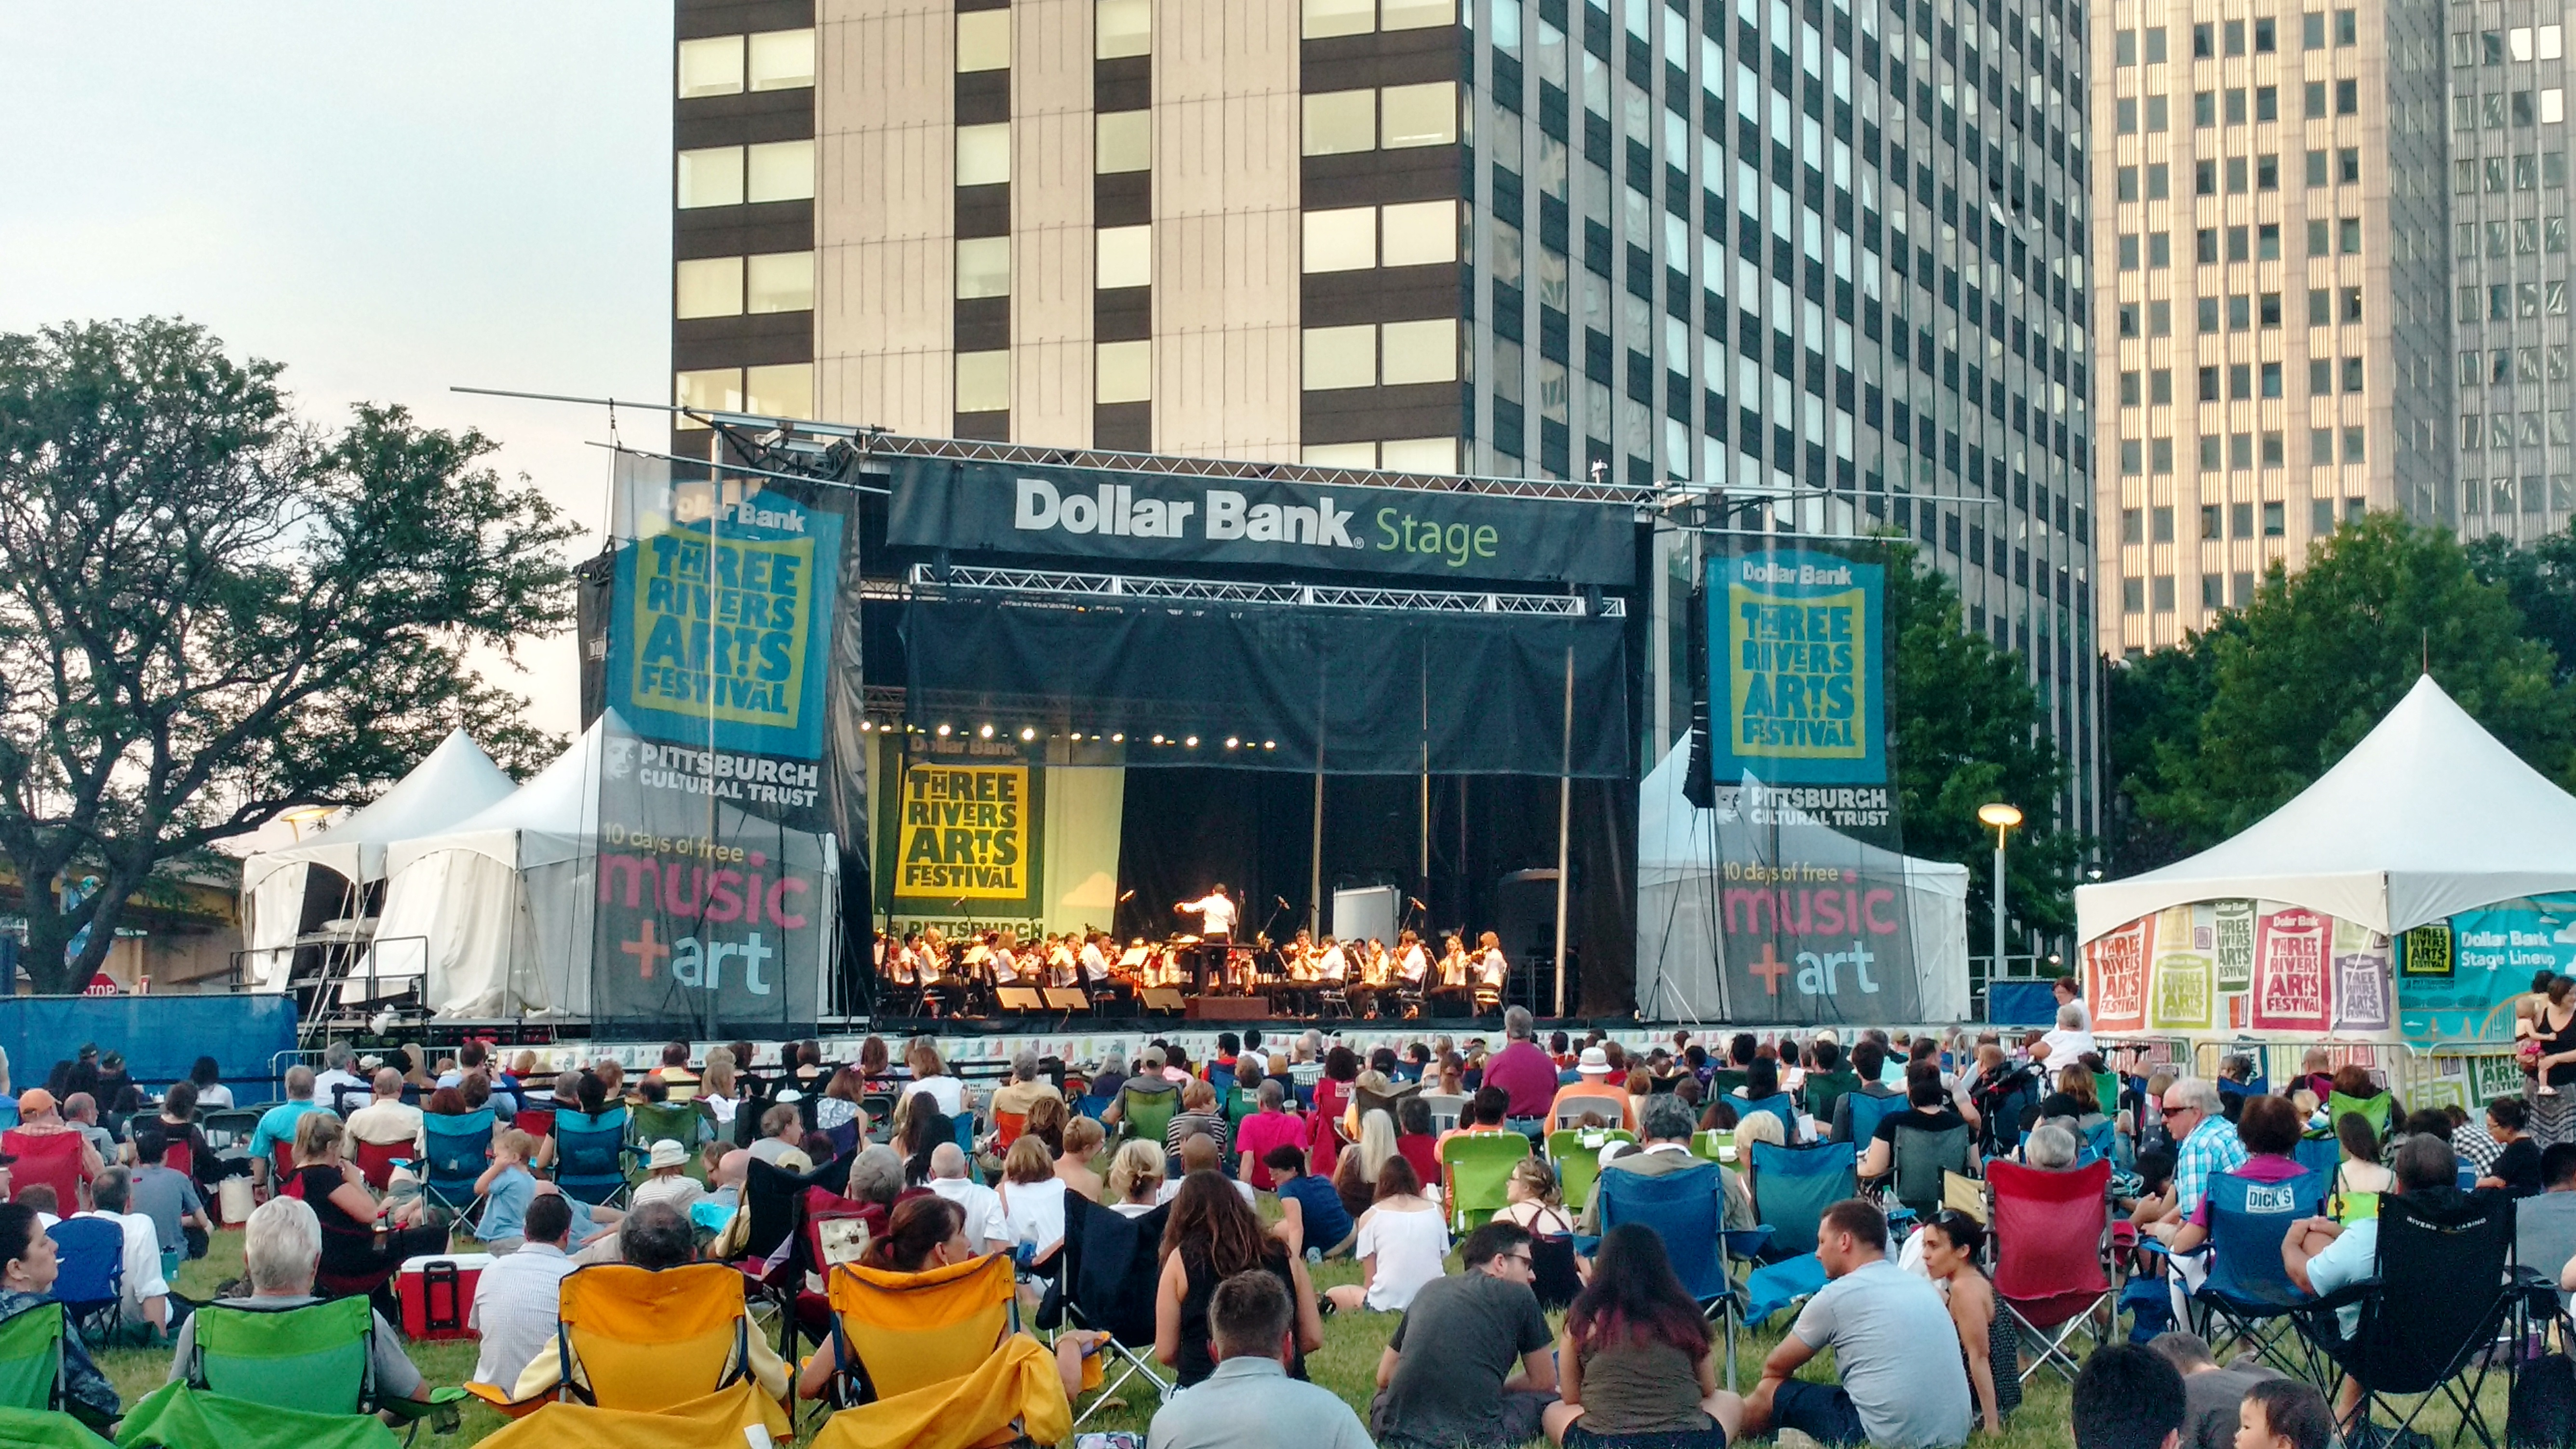 Concert Blog: The Night of the Dance: Pittsburgh Symphony Orchestra at the Three Rivers Arts Festival